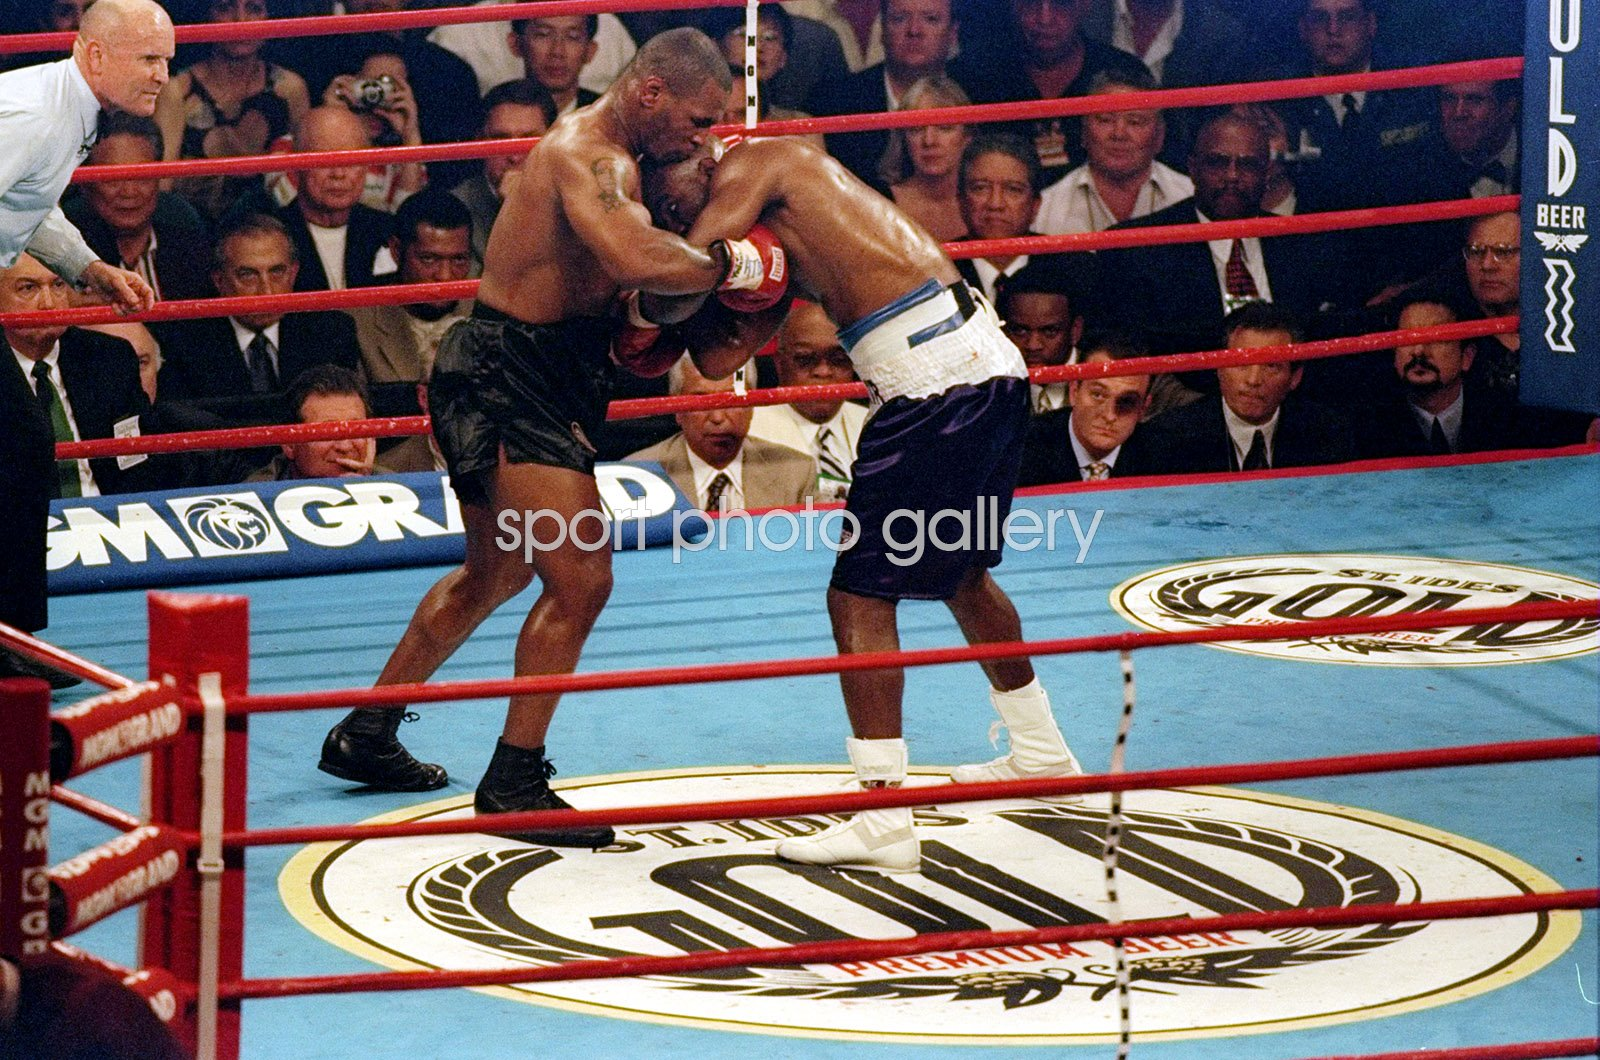 Mike Tyson v Evander Holyfield Heavyweight Rematch Las Vegas 1997